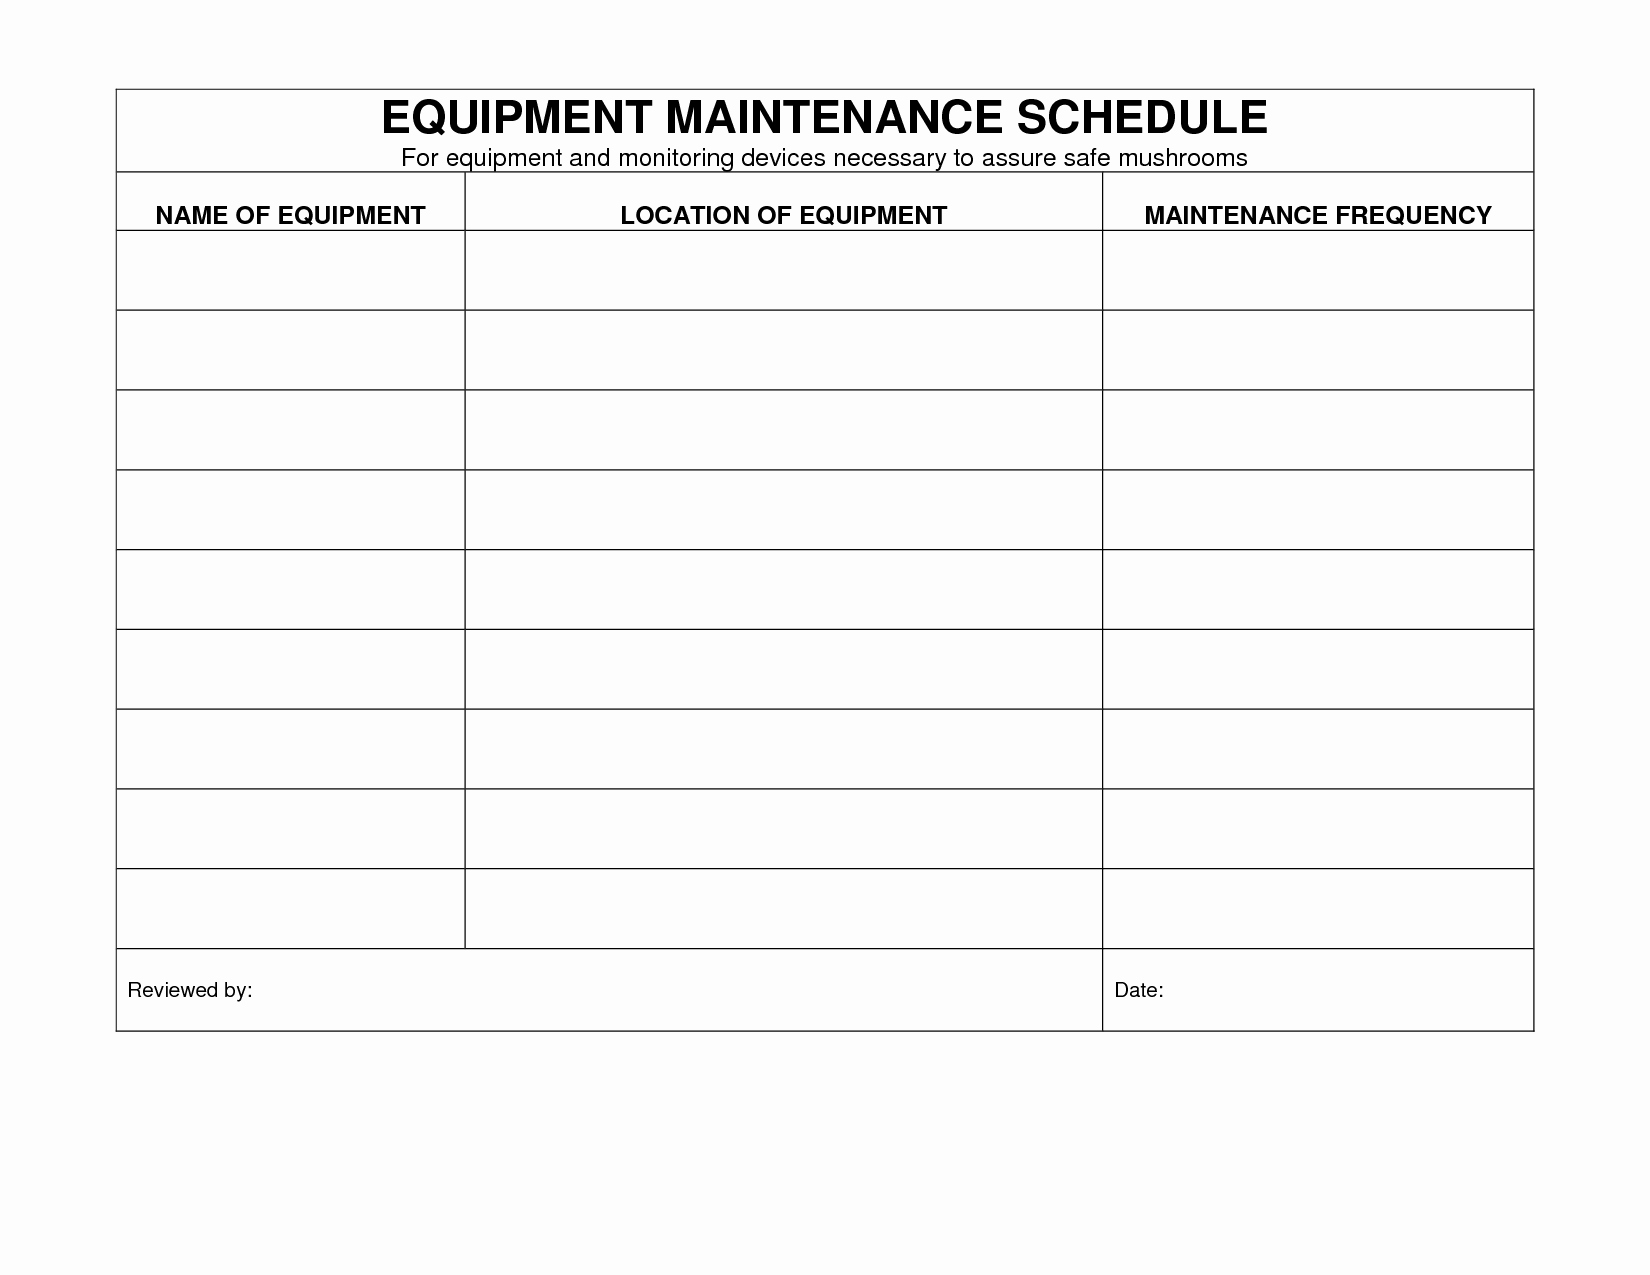 Machinery Maintenance Log Template Best Of Equipment Maintenance Schedule Template Excel